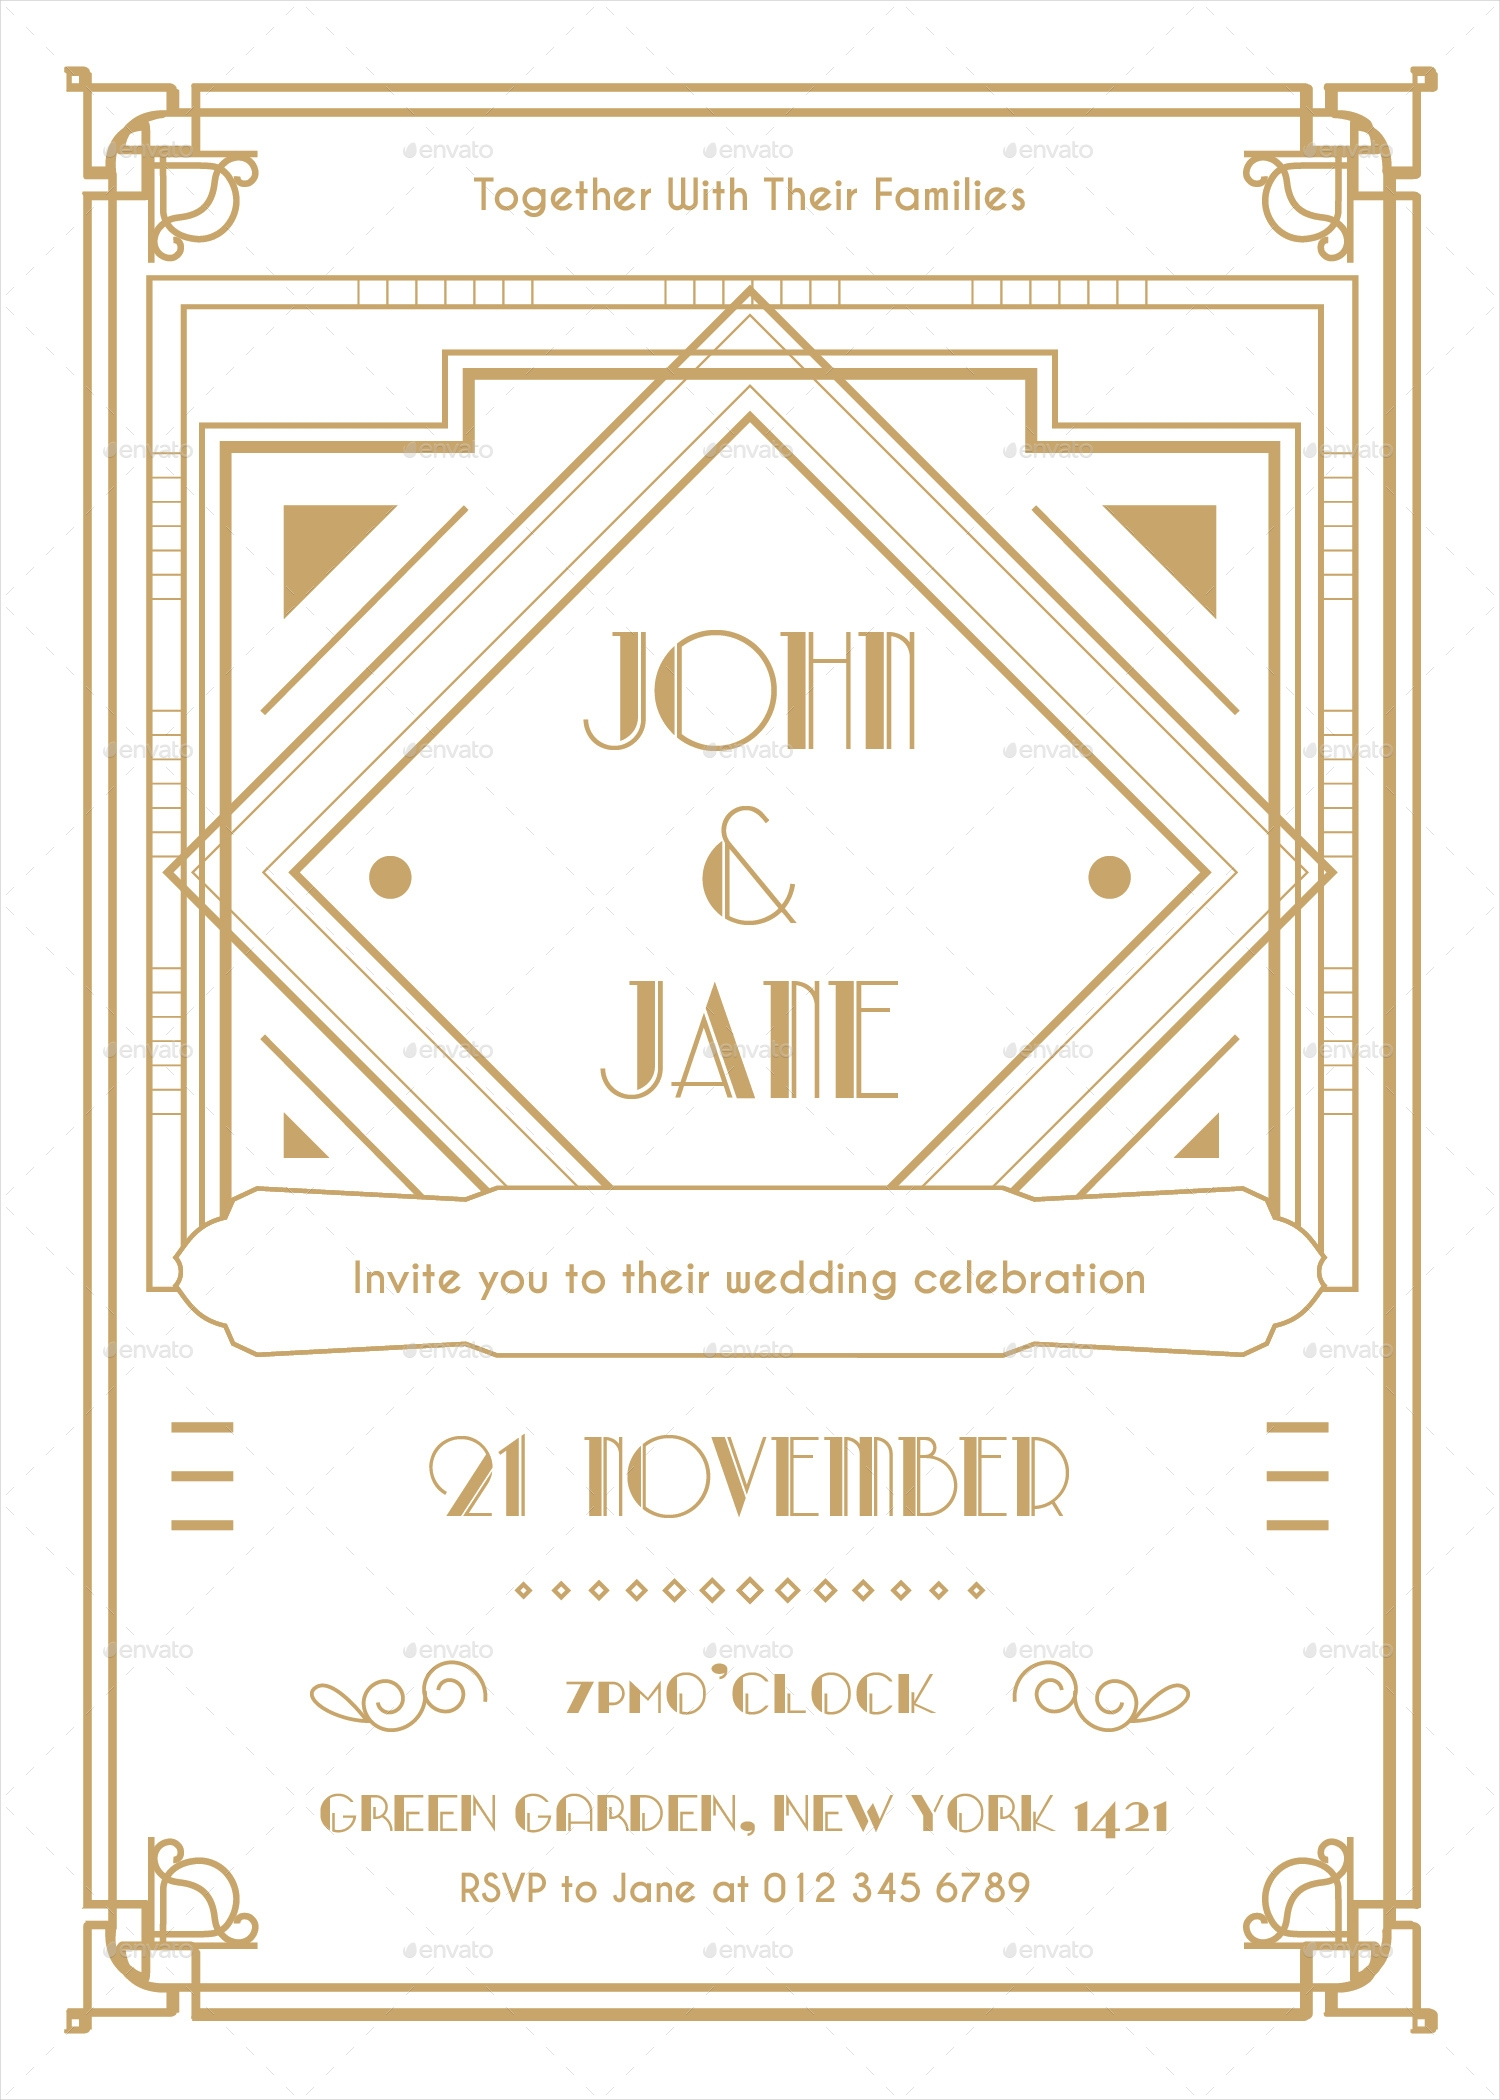 Art Deco Wedding Invitations.16 Art Deco Wedding Invitation Designs And Examples Psd